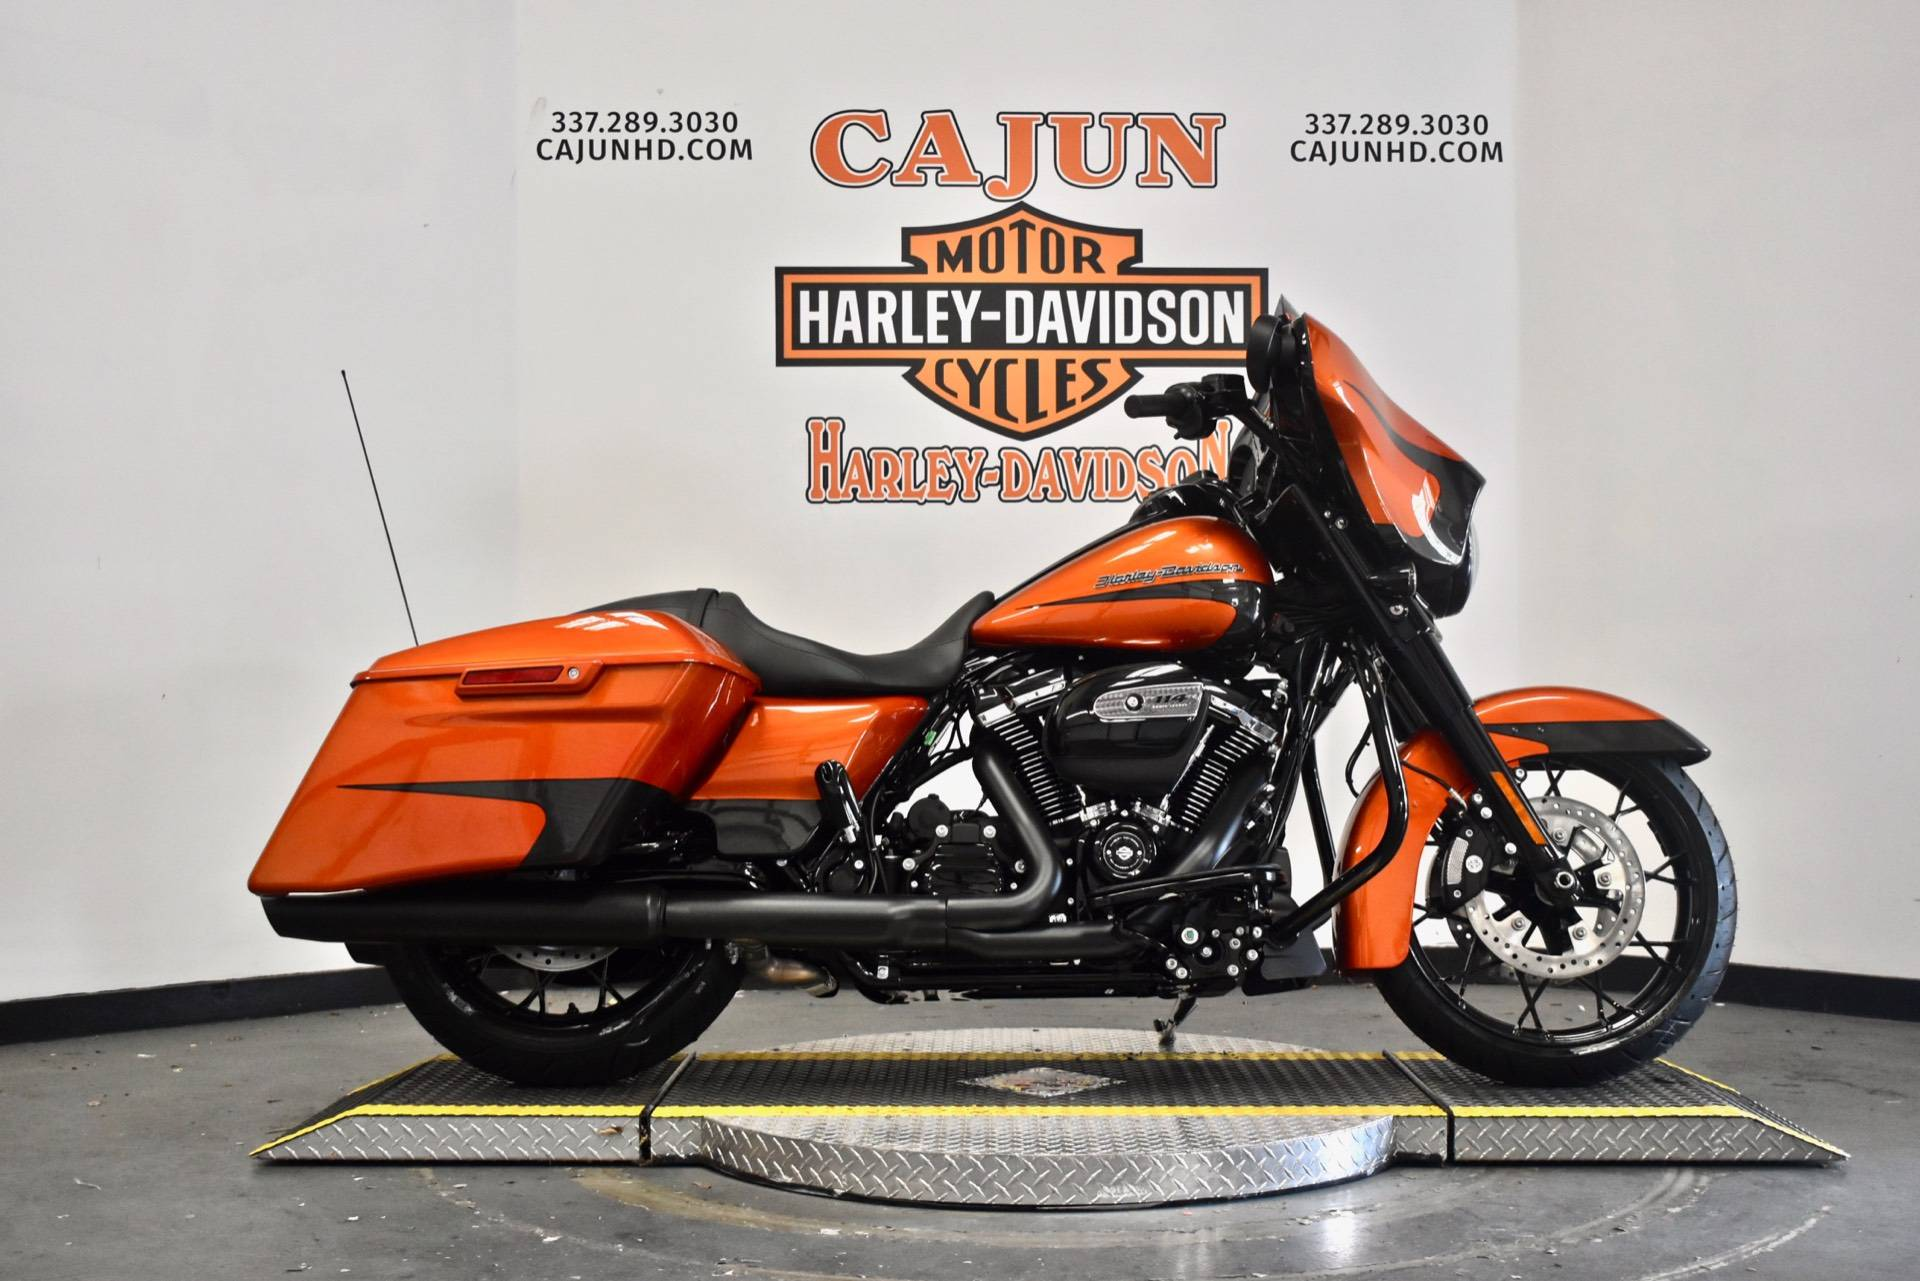 2020 street glide special - Photo 1